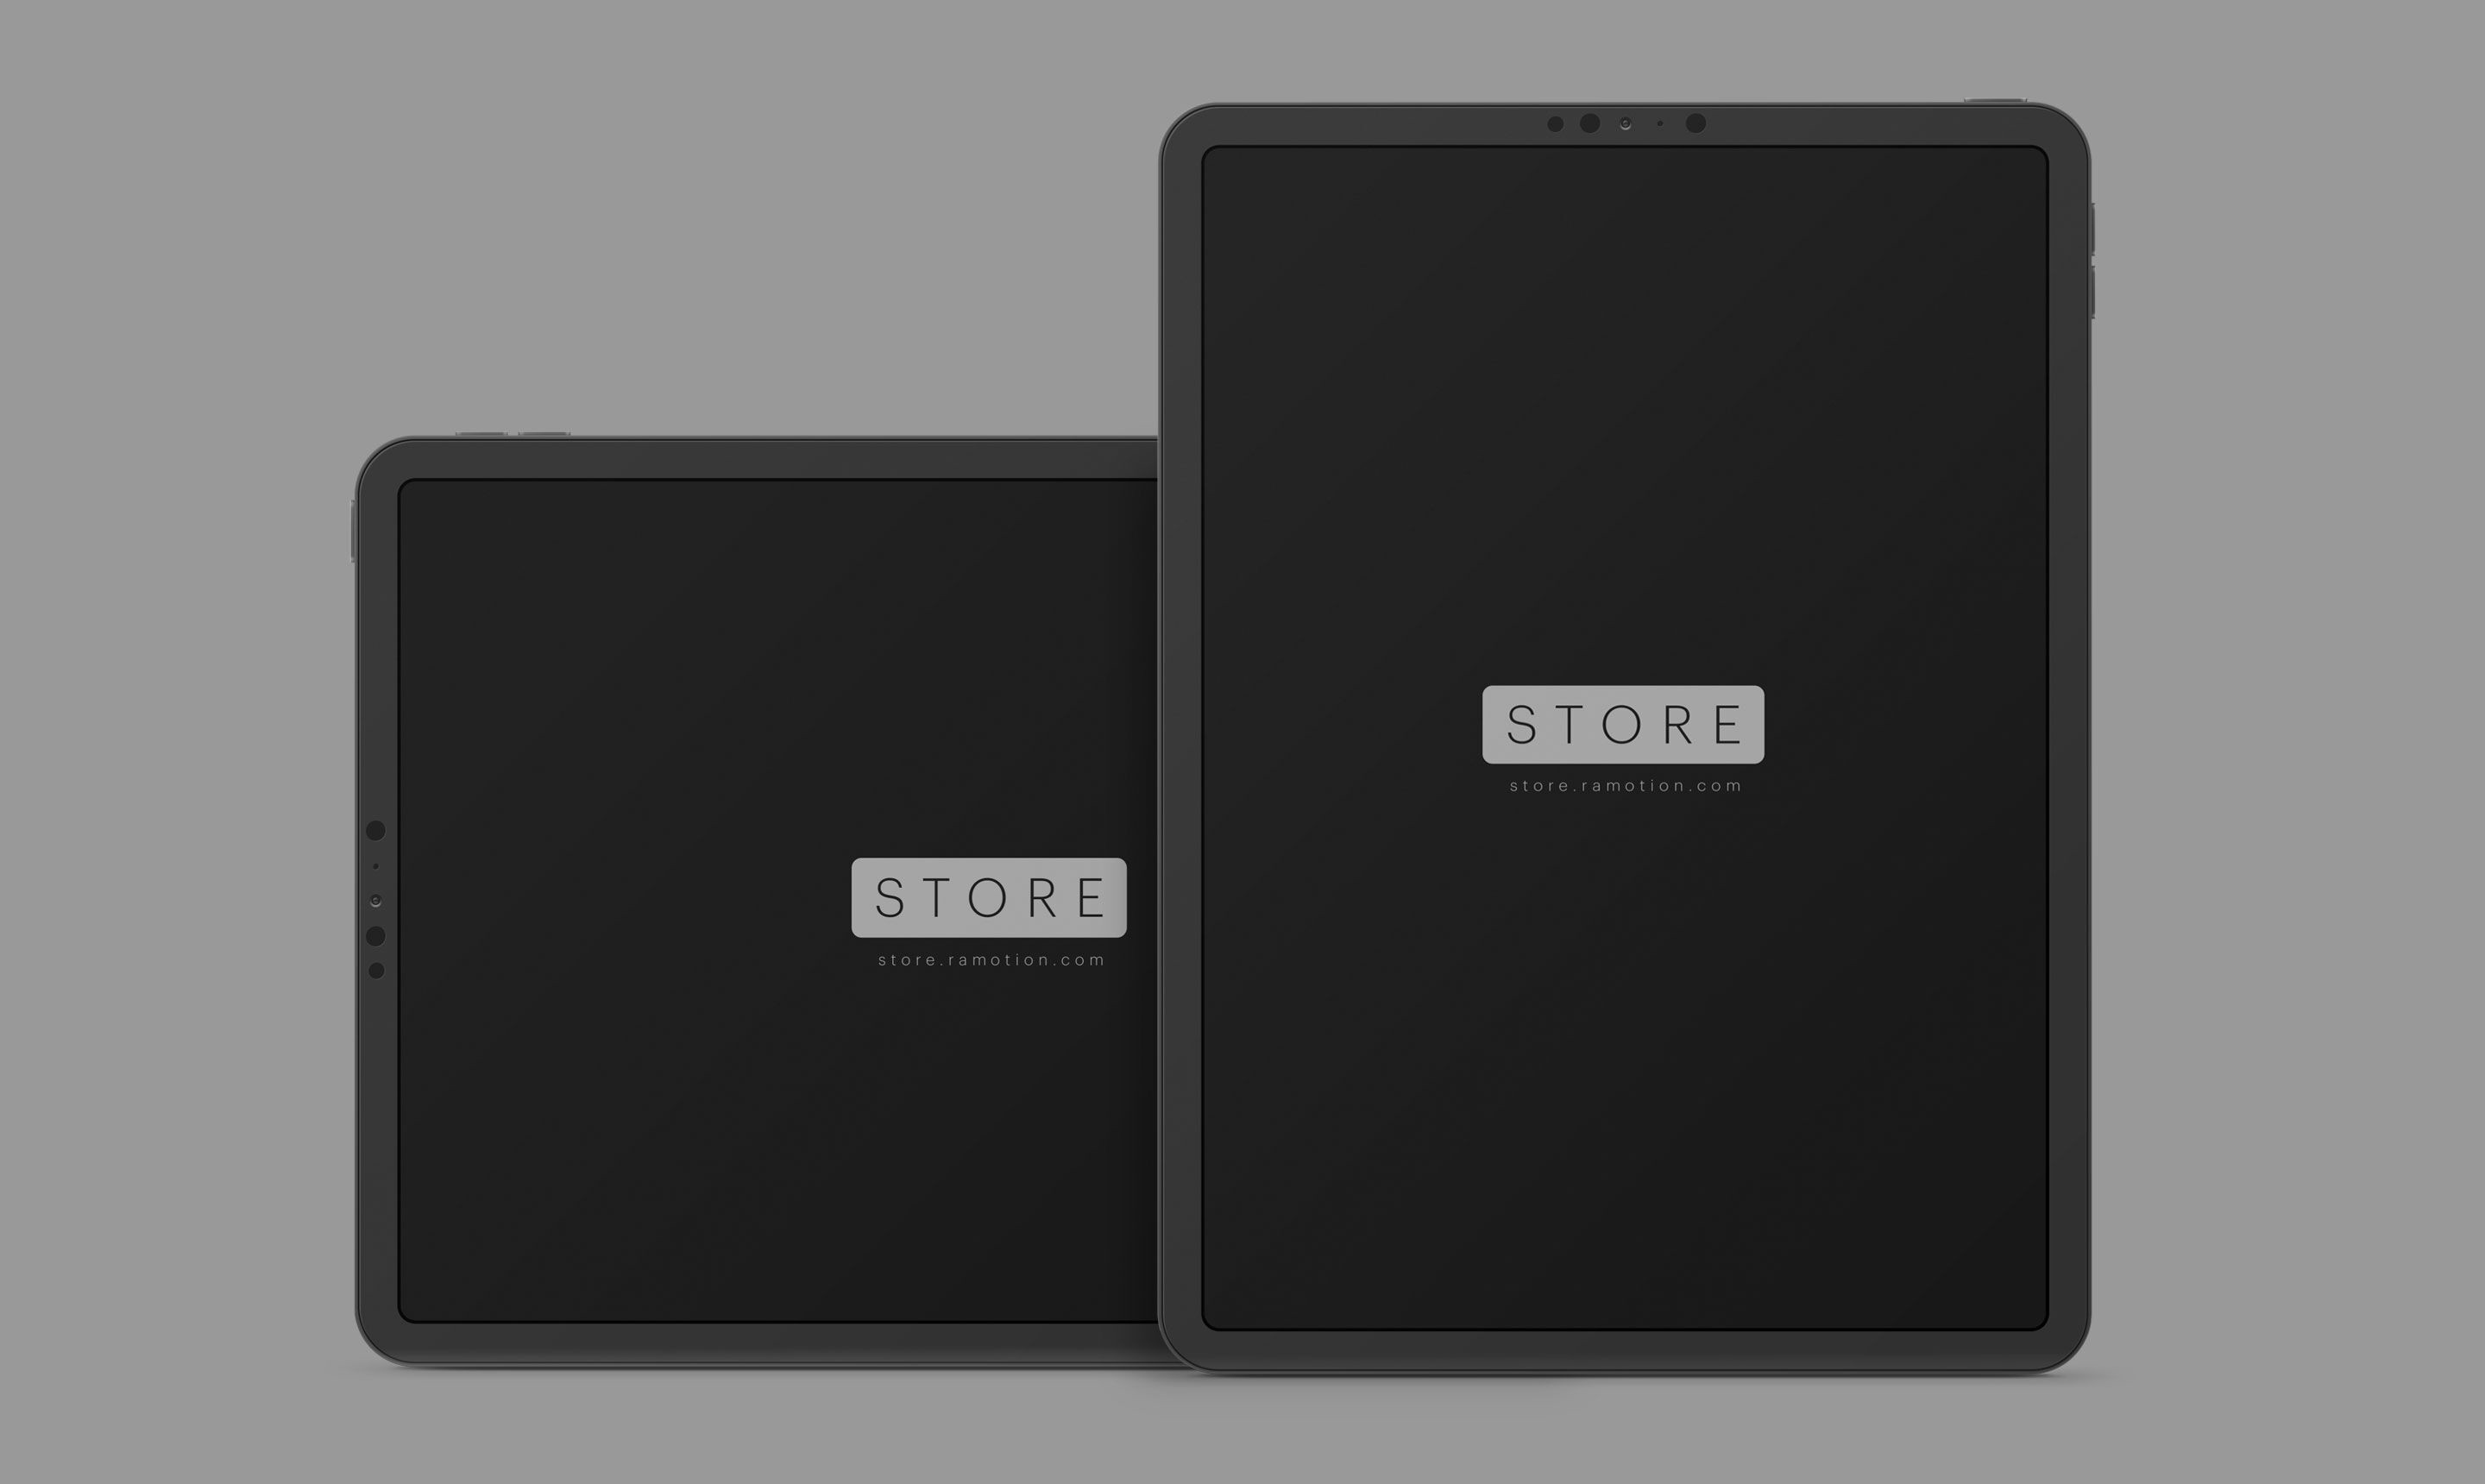 Free Ipad Pro Mockups For 2020 Psd Sketch March 2021 Ux Planet